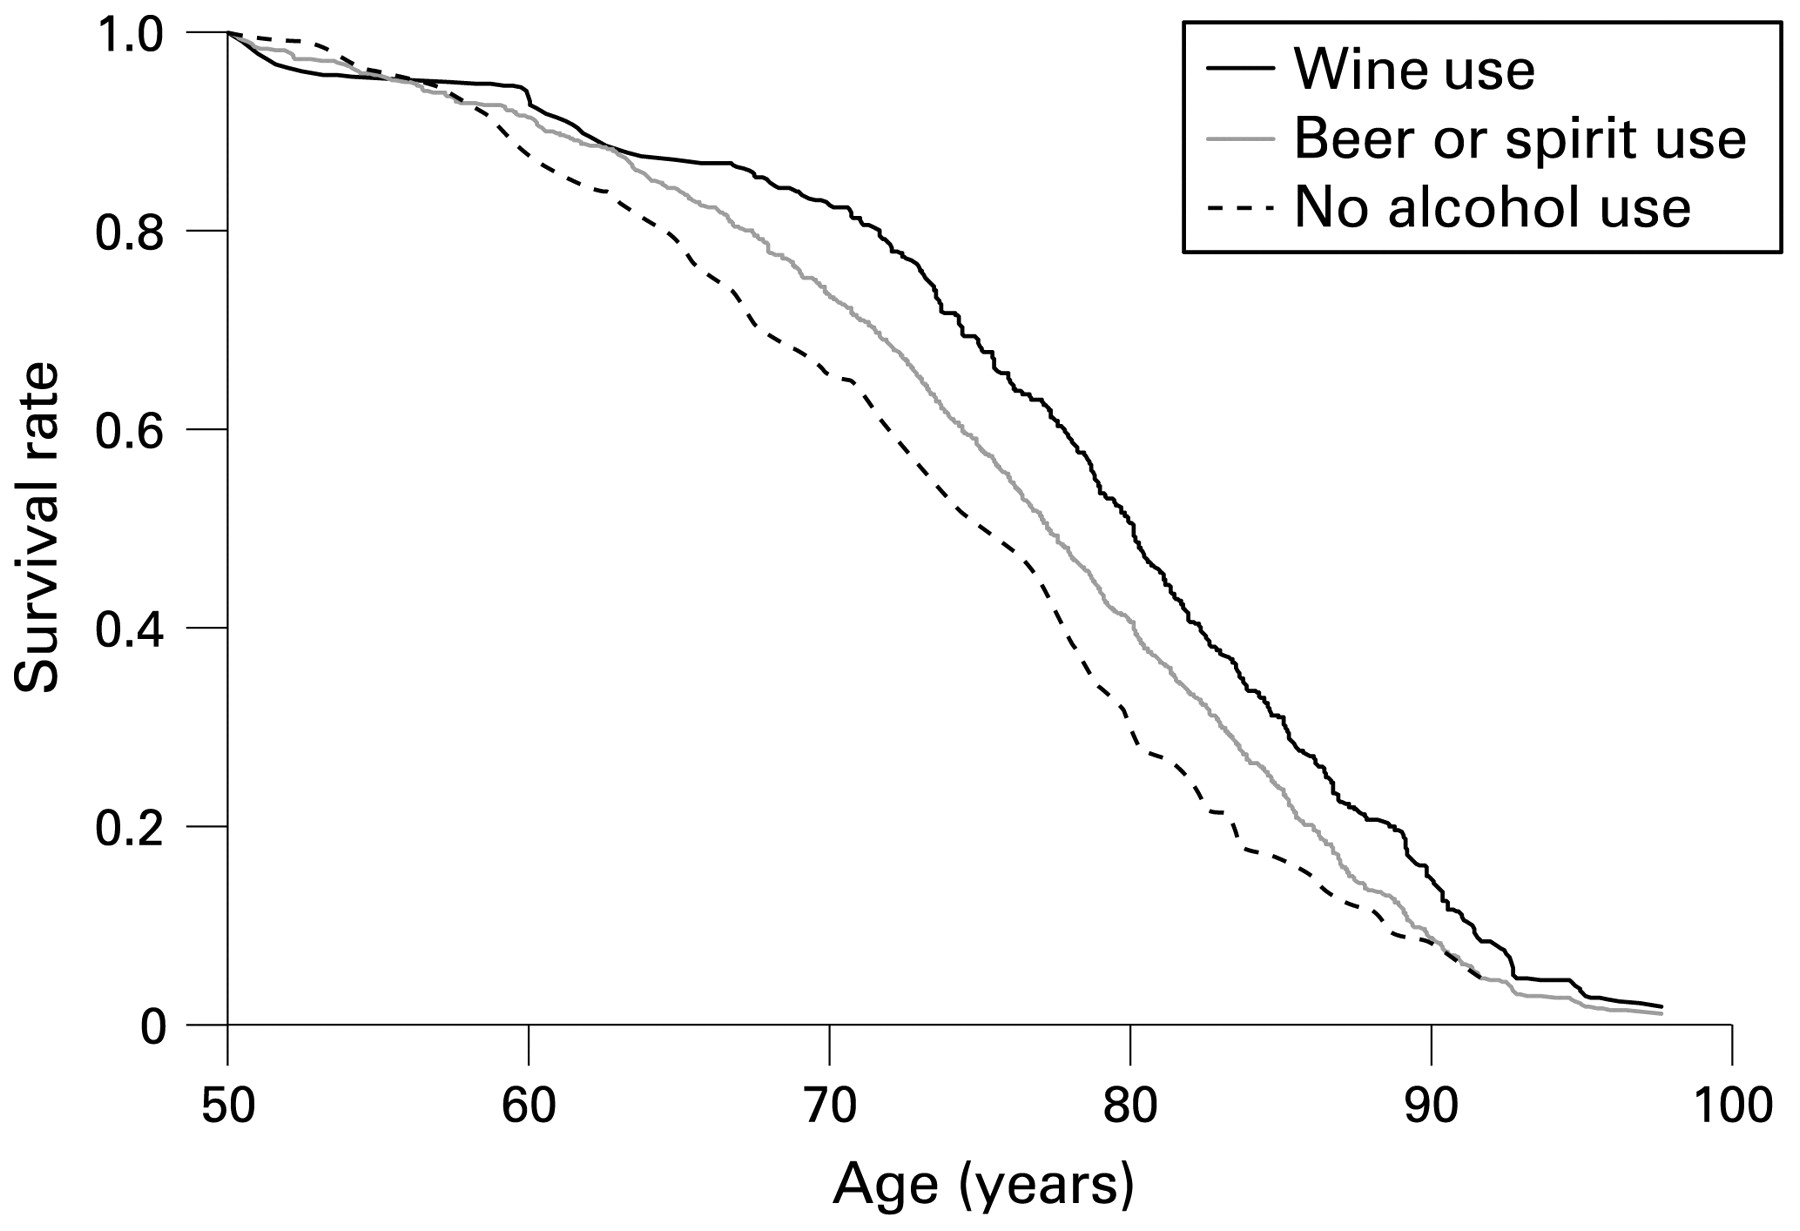 Alcohol consumption and life expectancy